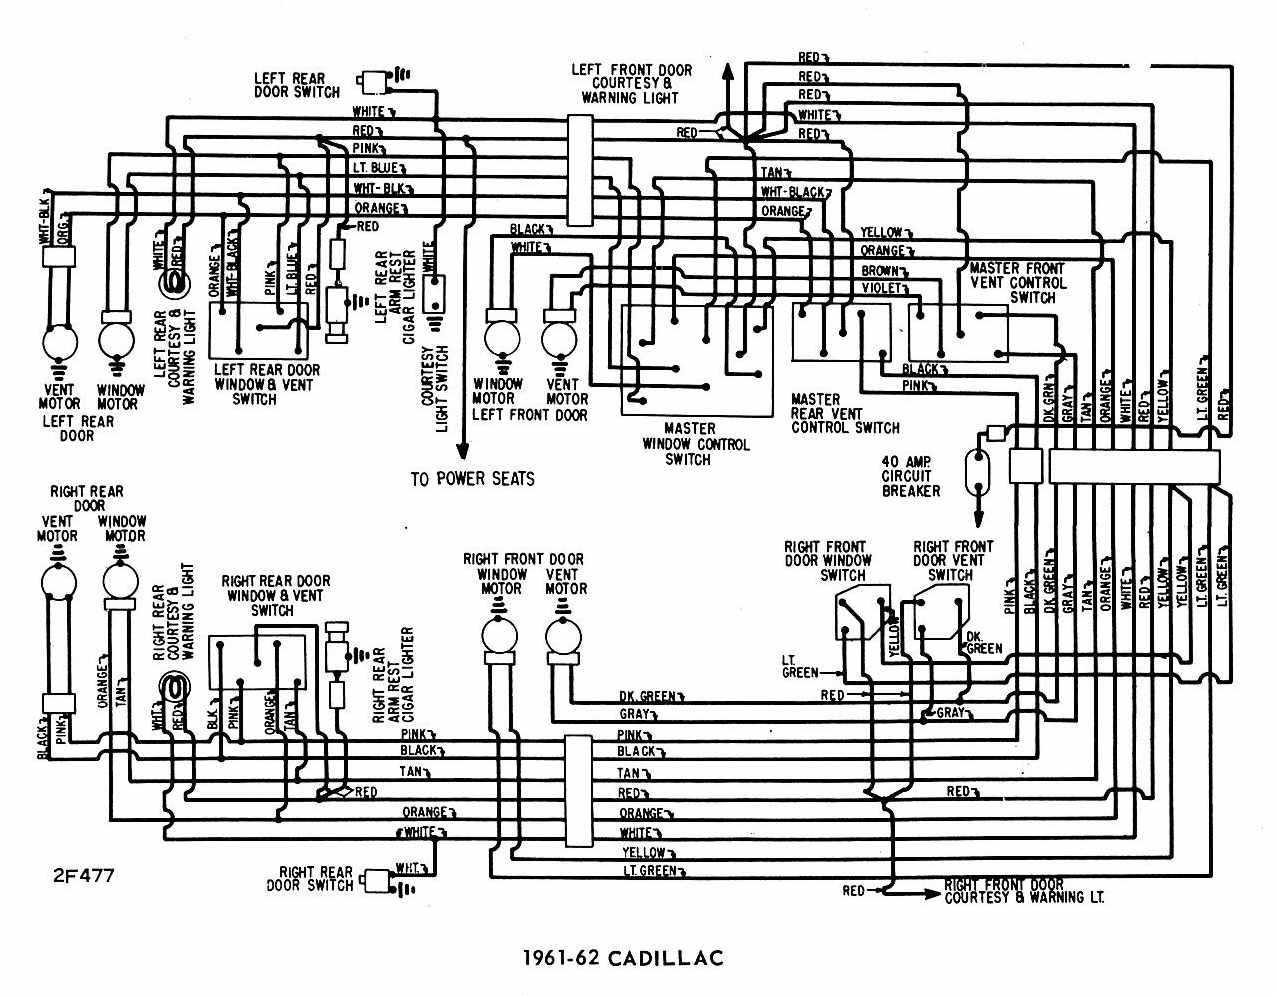 2007 Kia Rondo Fuse Box Diagram 2006 Chrysler PT Cruiser